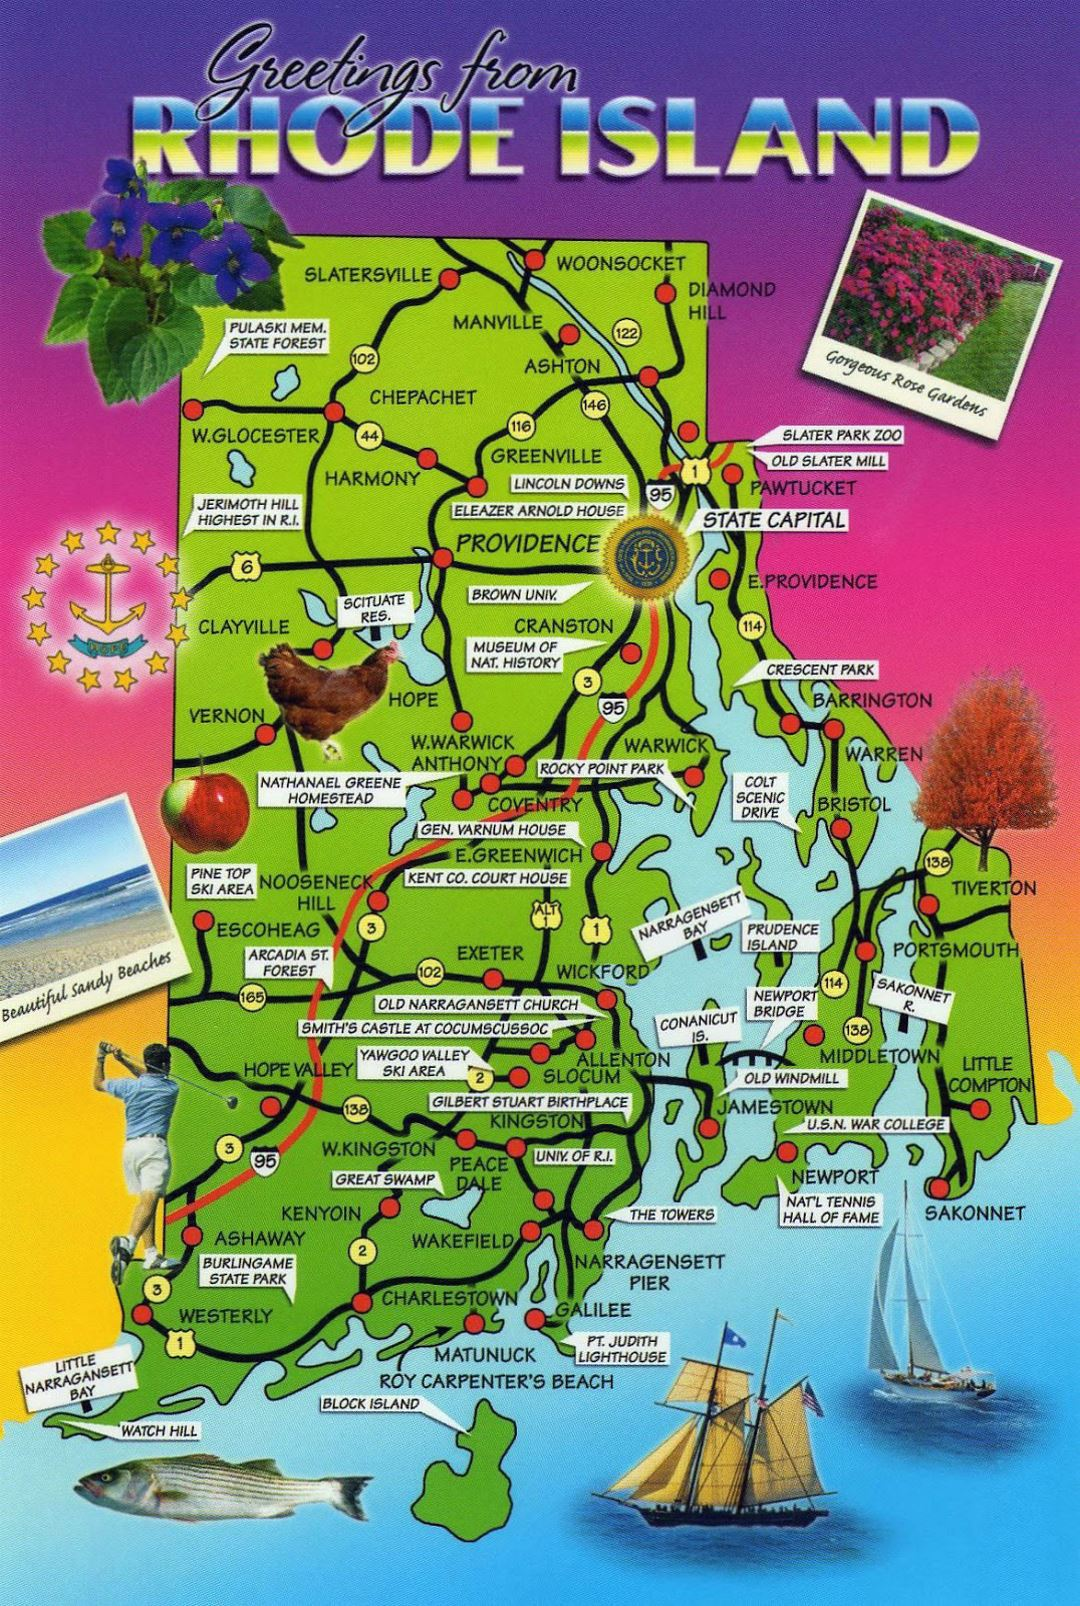 Large tourist map of Rhode Island state